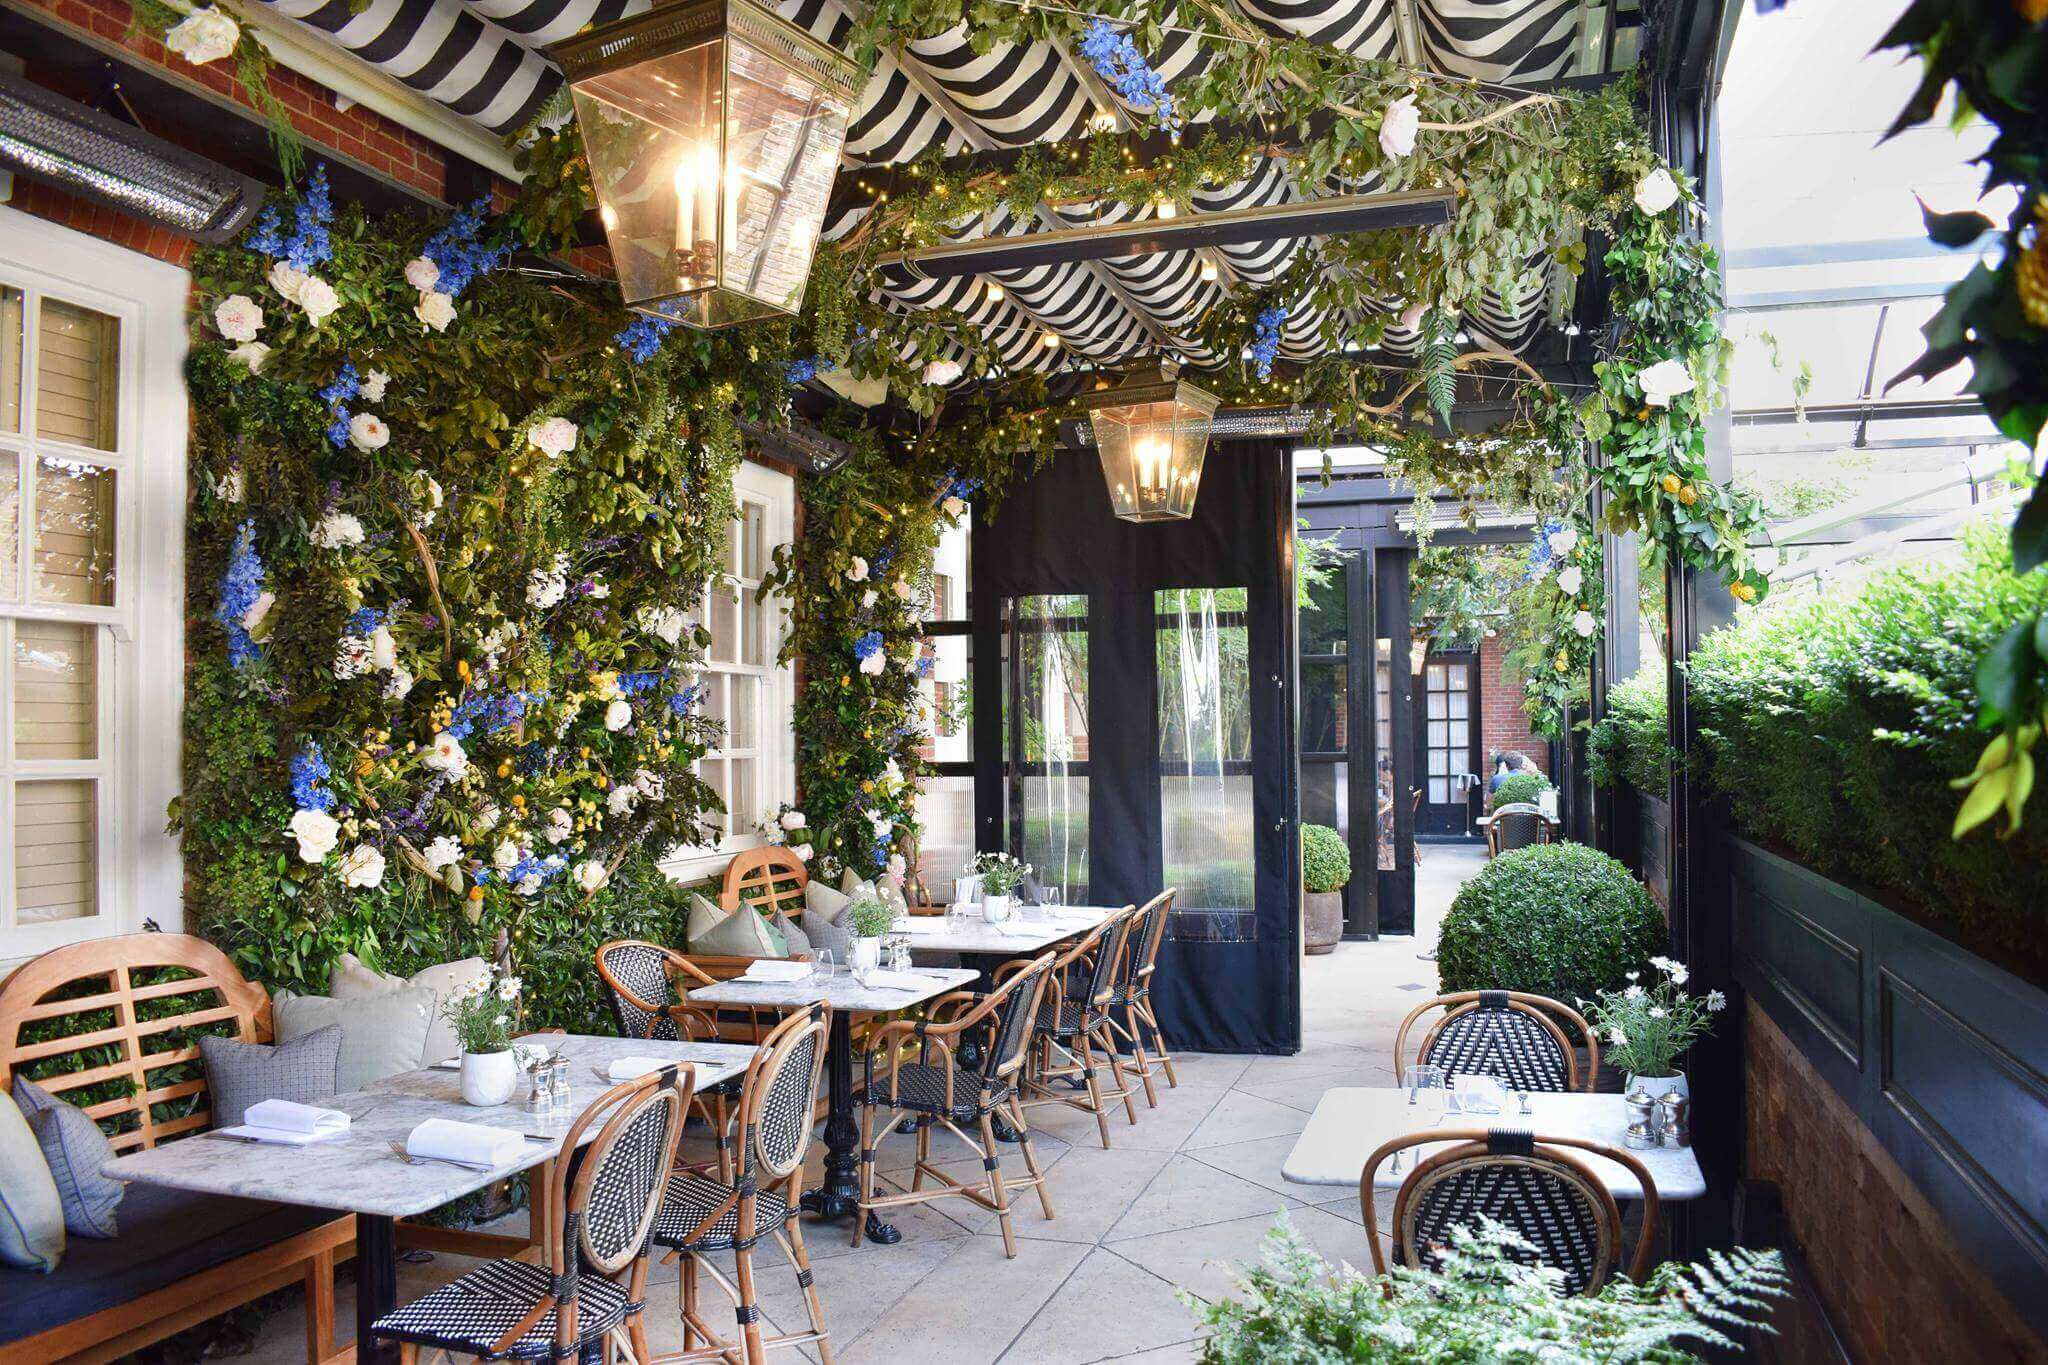 Outdoor Seating for Brunch at Dalloway Terrace